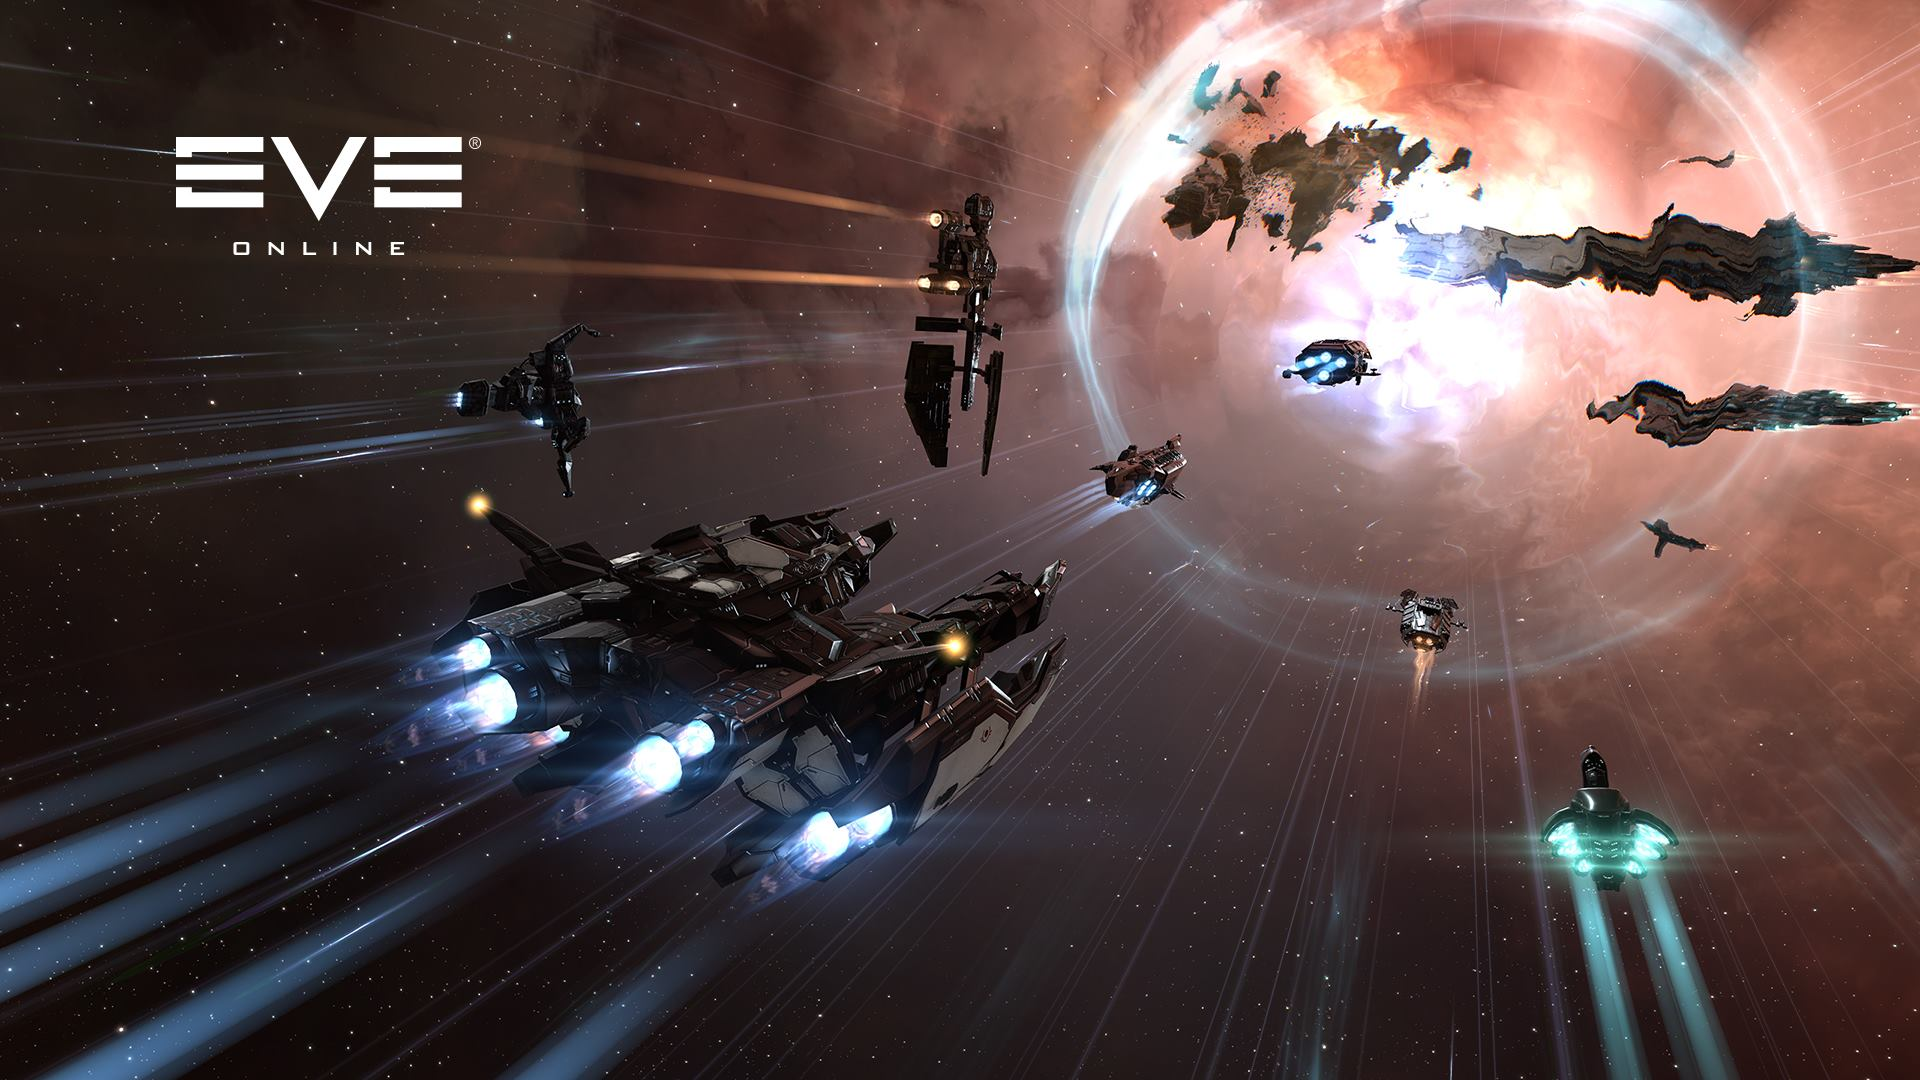 3d Money Wallpaper Eve Online Improvements To Standings Ui Scanning And The